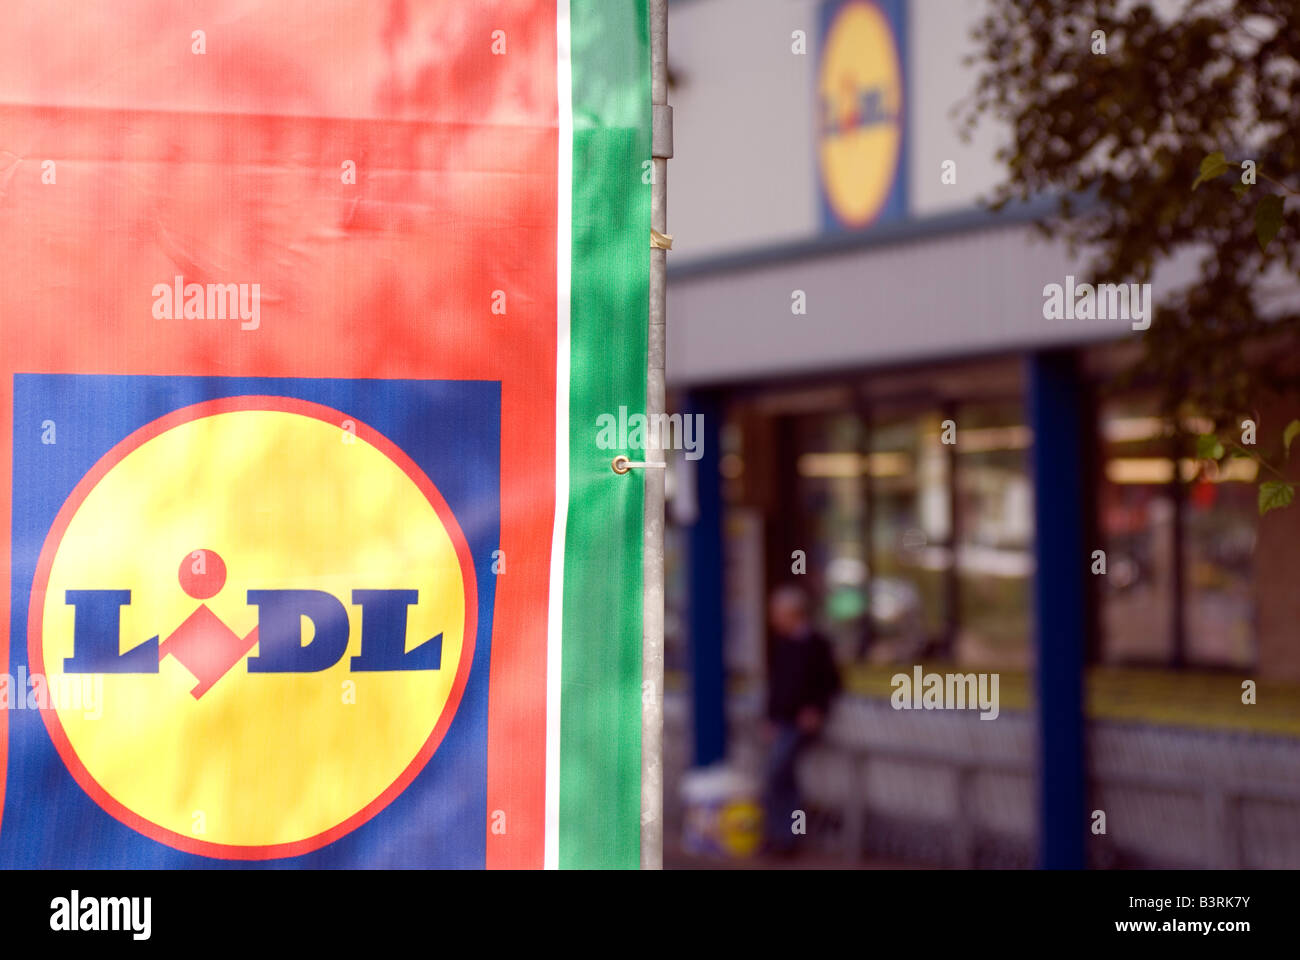 Lidl cheap food supermarket  in Bletchley Milton Keynes - Stock Image